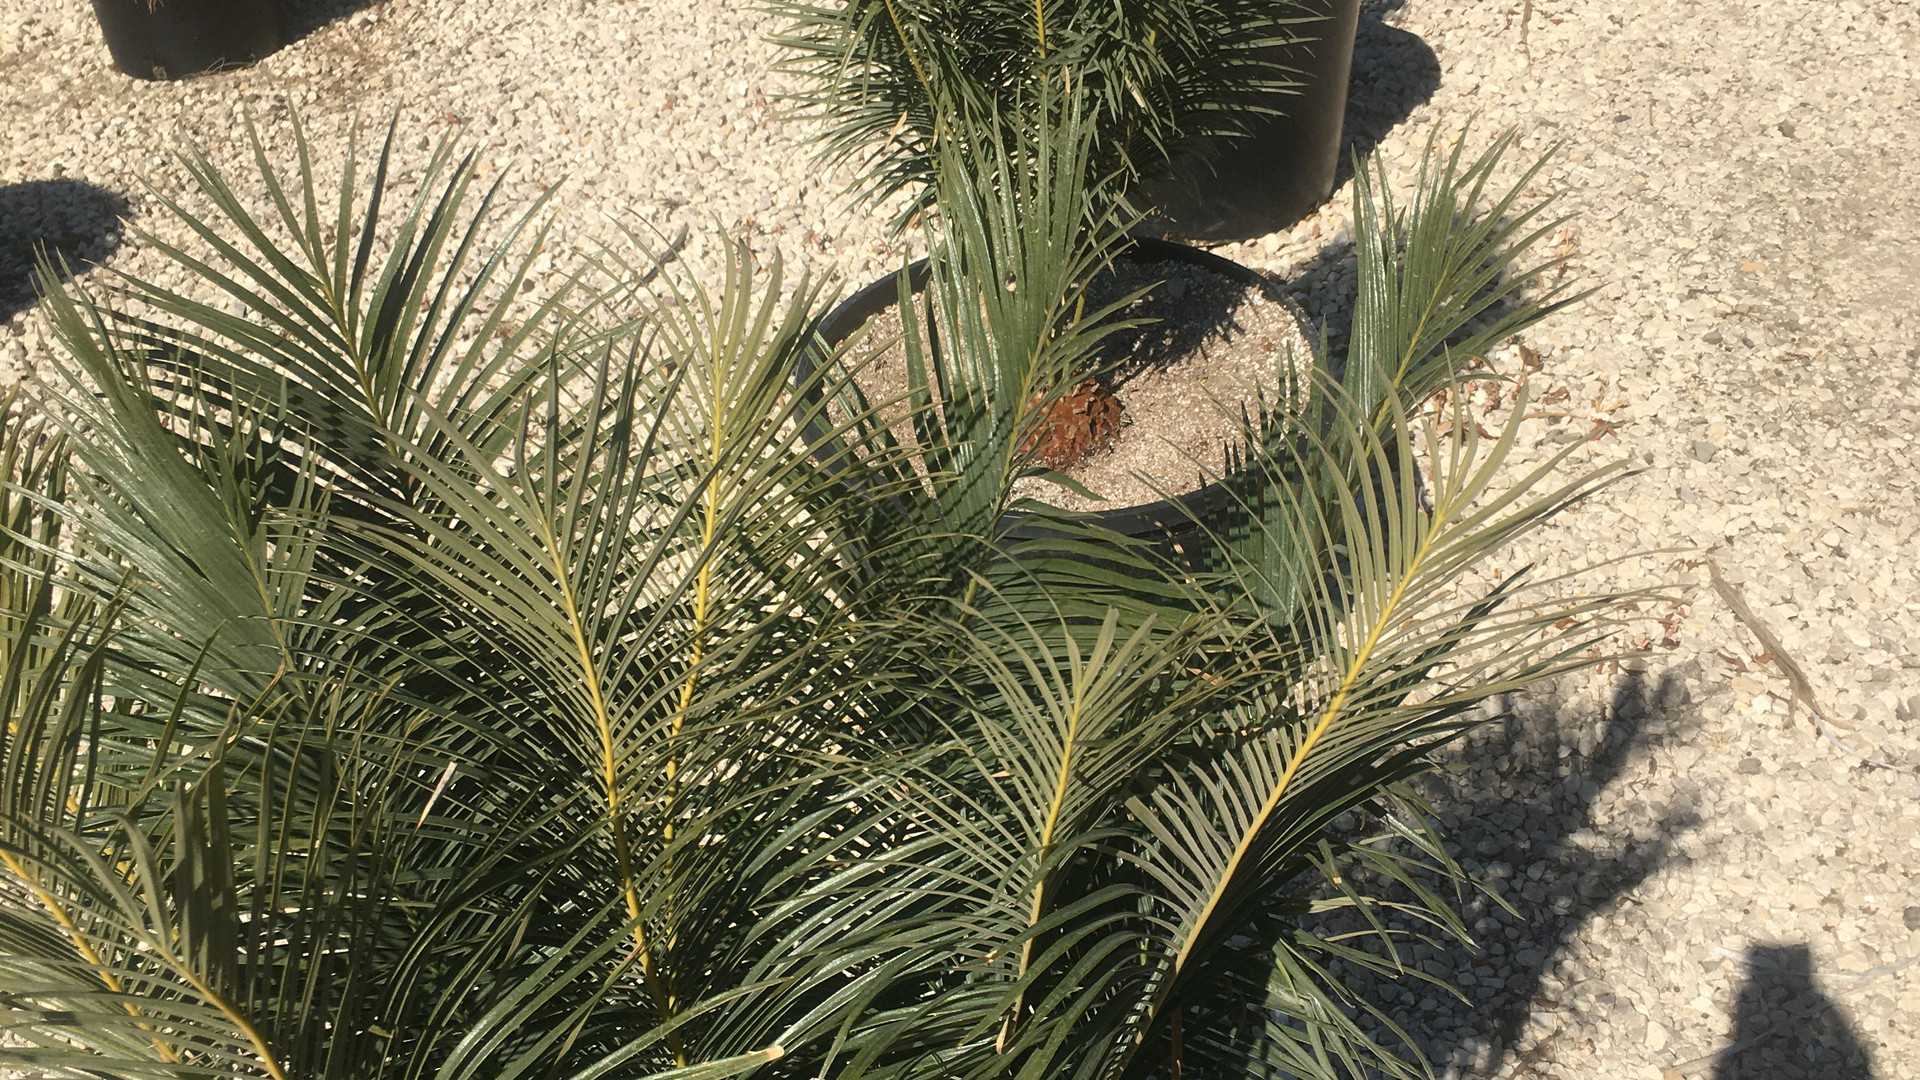 Cycas panzhihuaensis waiting for the right person to come and take it hopefully to a good spot..this plant is not forgiving and requires skilled hands.